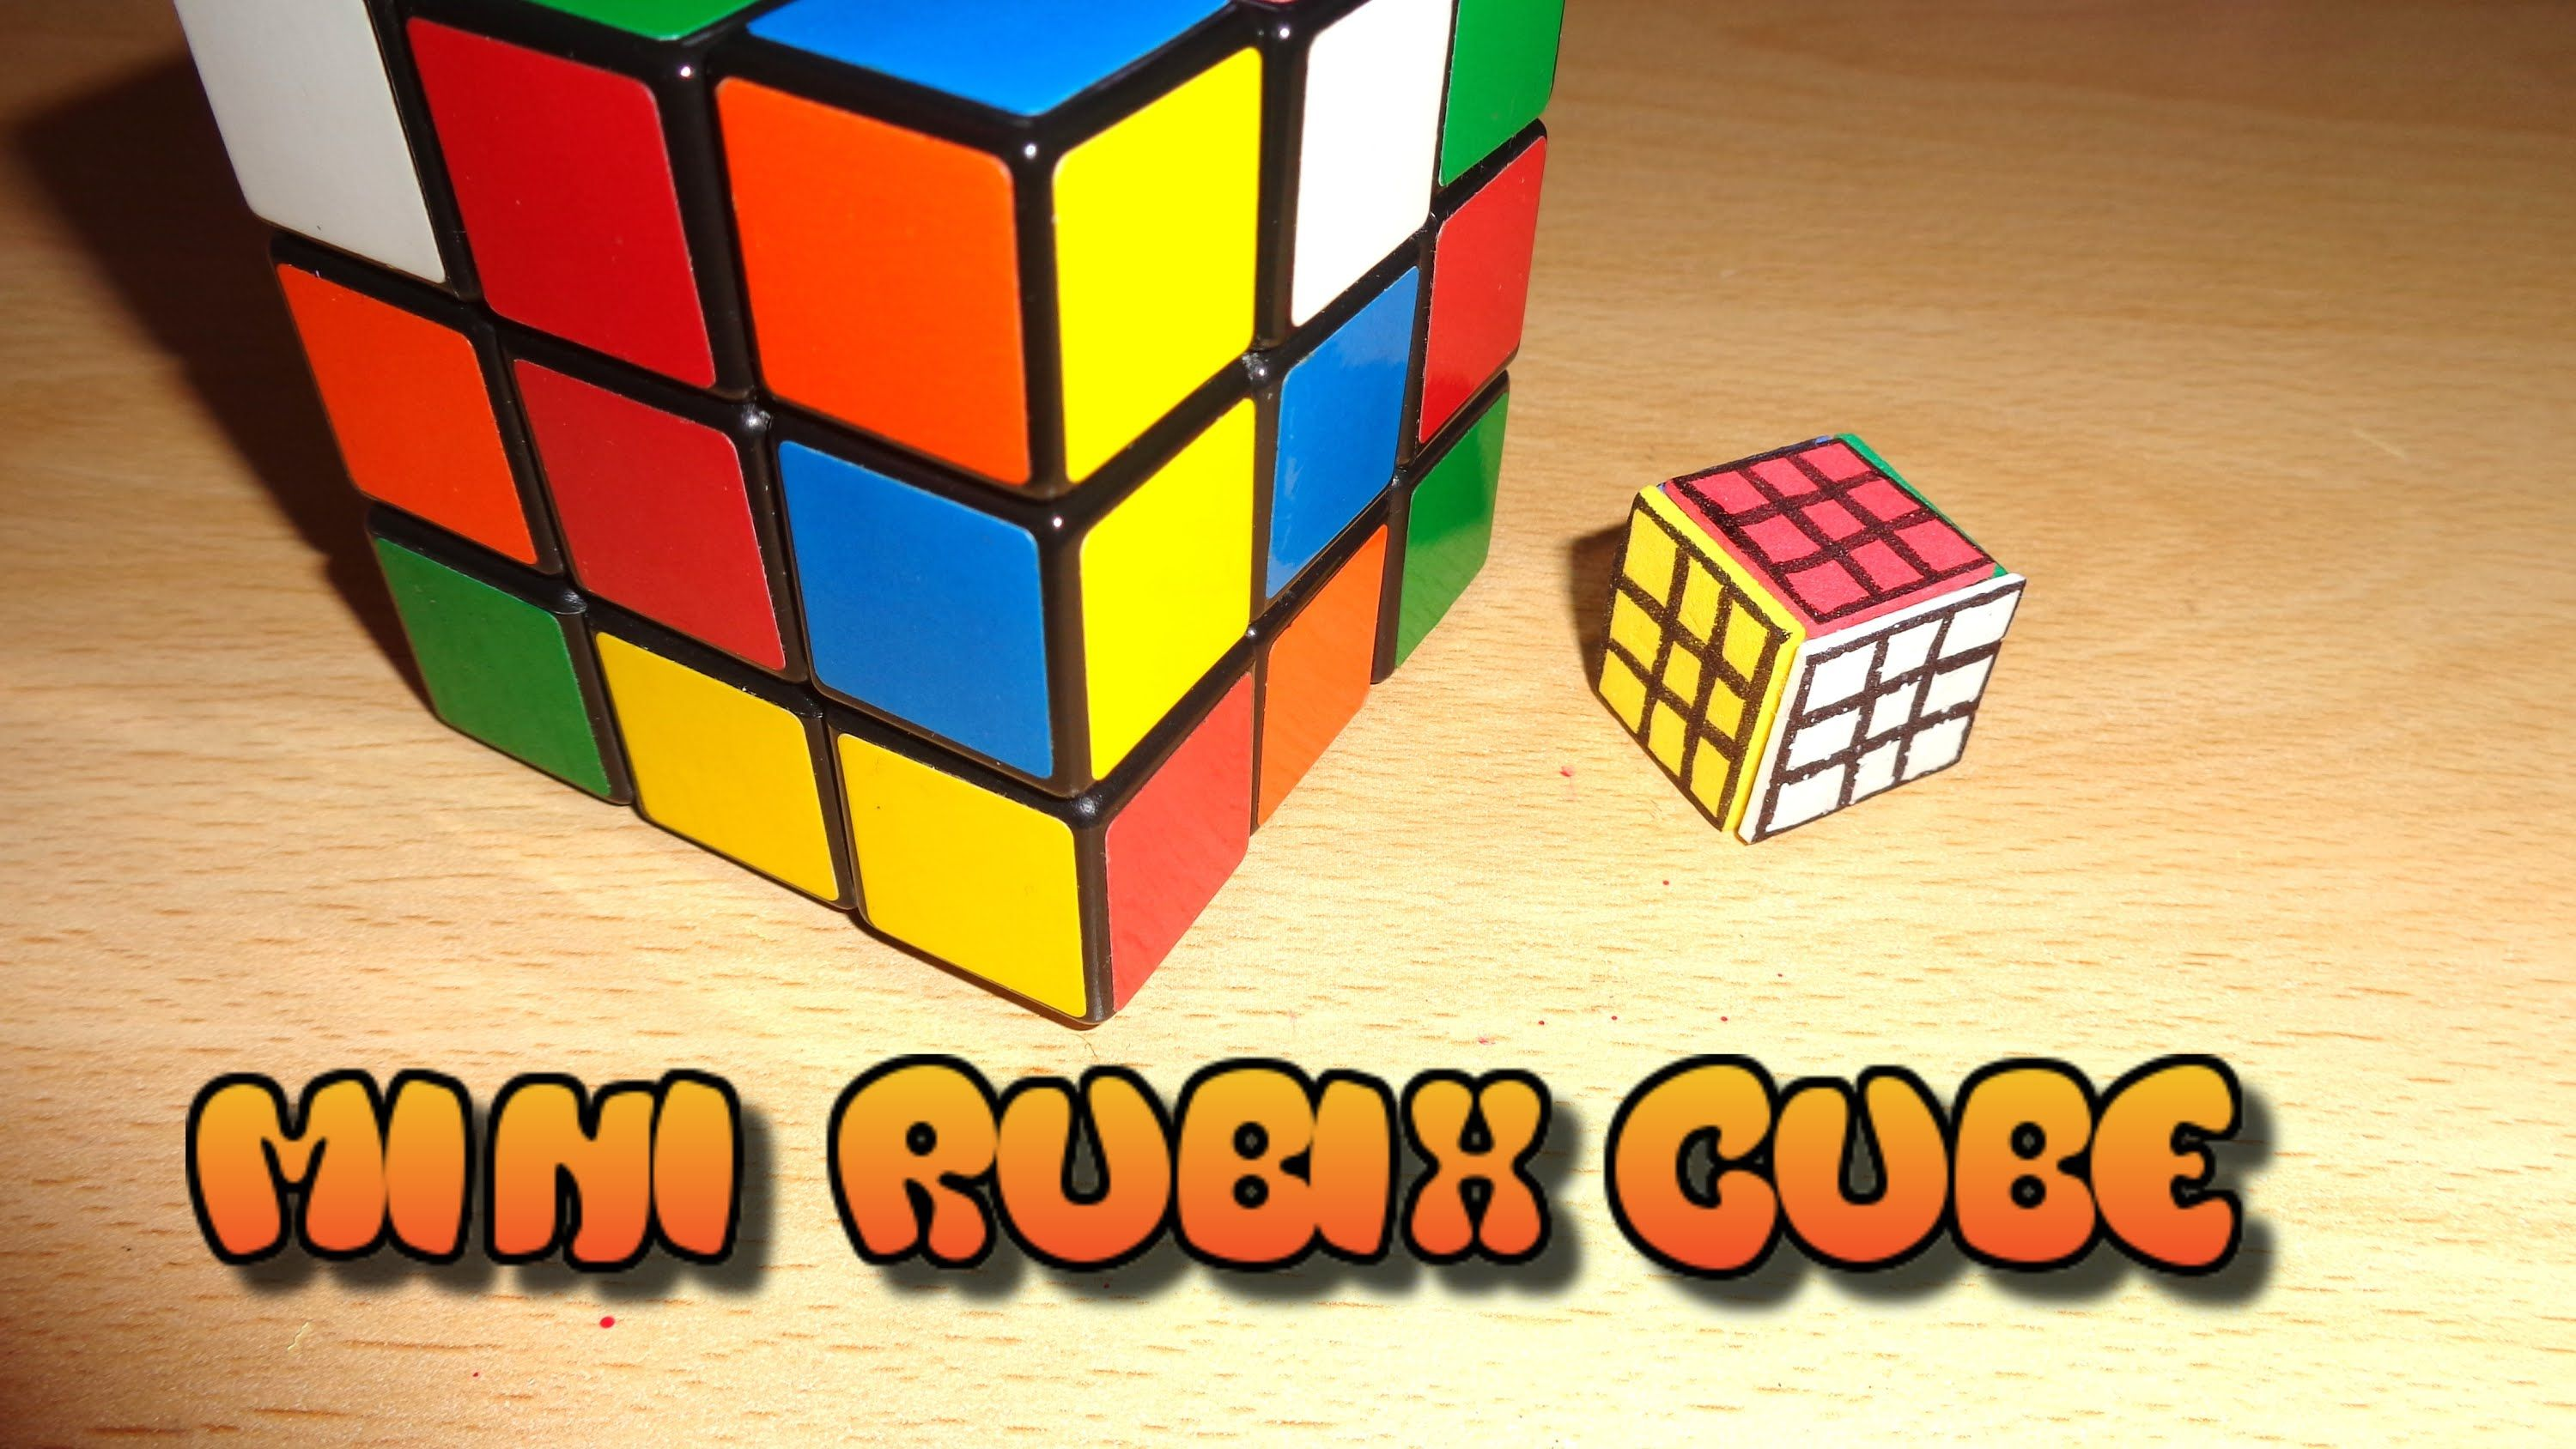 Lps Crafts How To Make A Lps Rubix Cube Lps Crafts Crafts Rubix Cube